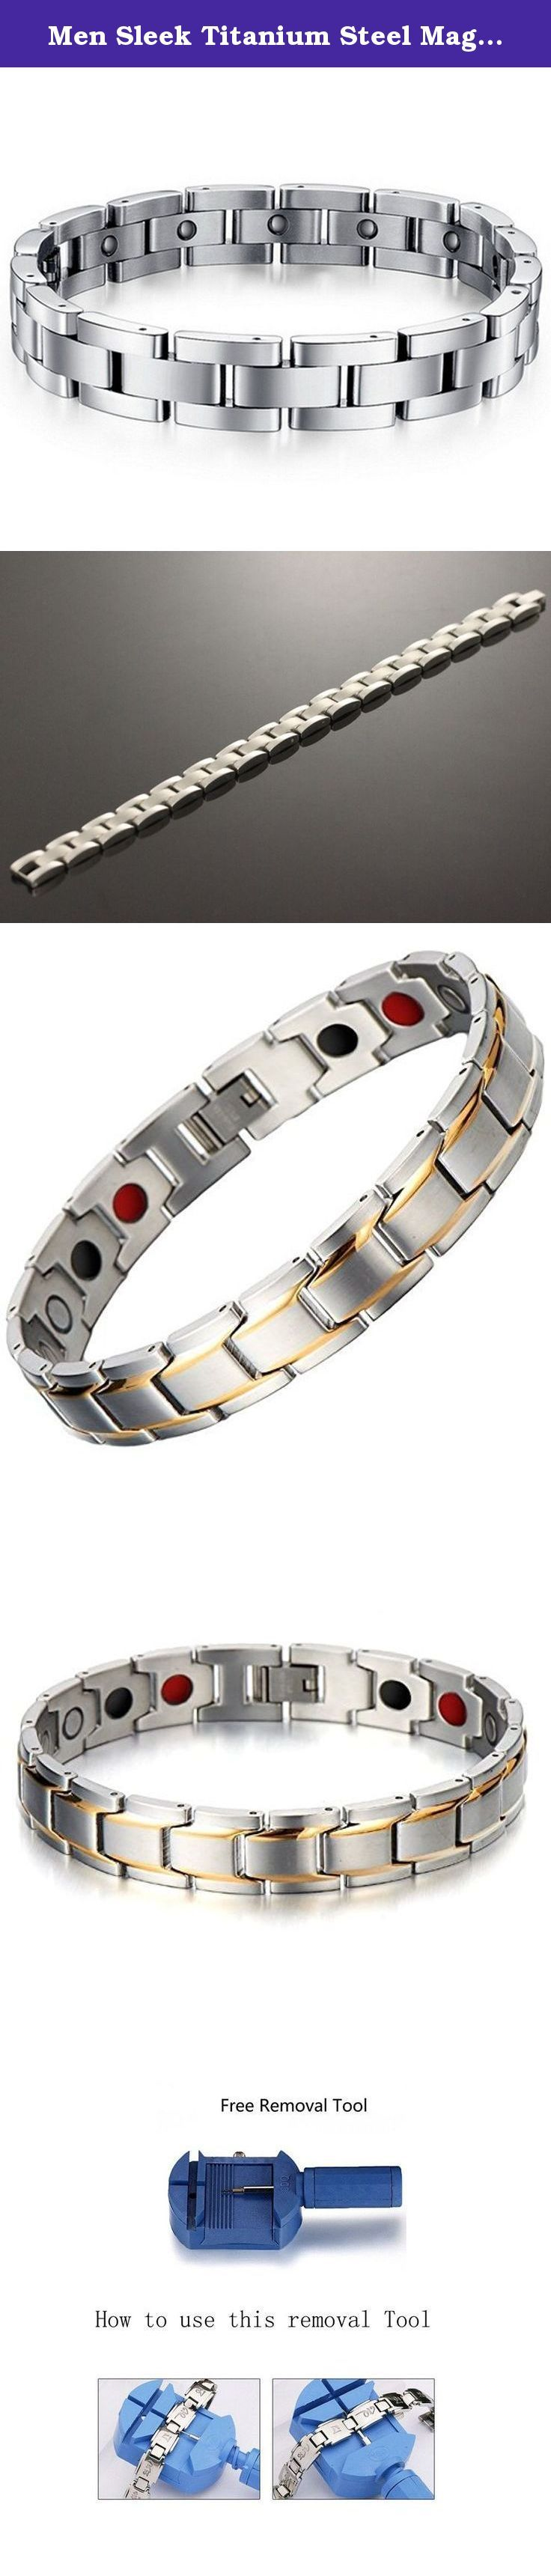 Men Sleek Titanium Steel Magnetic Therapy Bracelet in Velvet Gift Box with Free Link Removal Tool. Blending elegance with strength, this super lightweight bracelet from our latest collection,it is made from finest quality Titanium, 230mm long and approx. 11mm wide, it comes packed in an impressive bracelet box at no extra cost. Also included in the price is an easy-to-use Link Removal tool, allowing you effortlessly to adjust the bracelet to your requirements from the convenience of your…